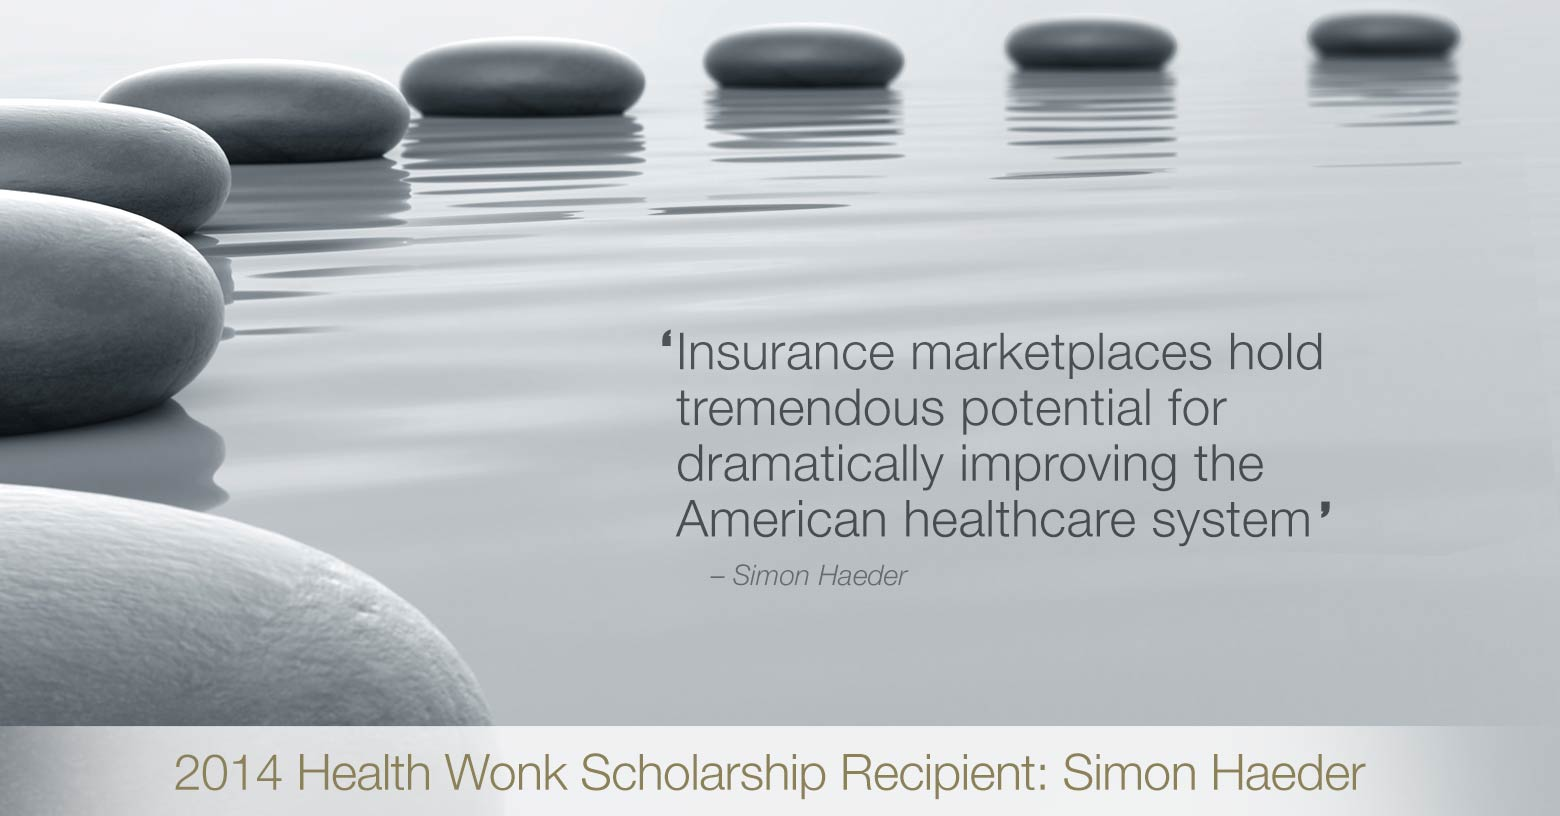 Obamacare: A Stepping Stone? photo